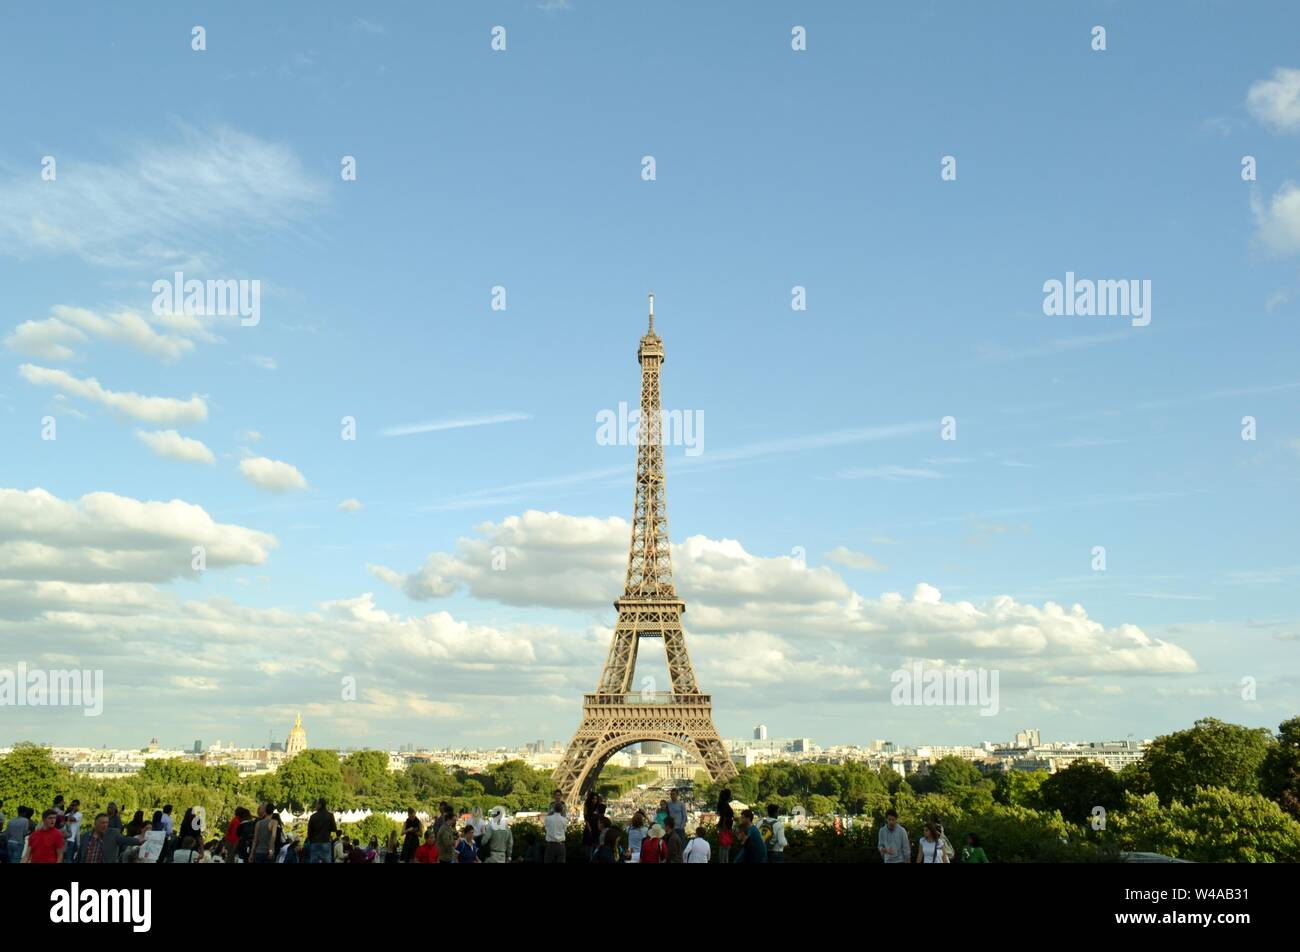 Paris/France - August 18, 2014: Beautiful panoramic view to the Eiffel Tower from Trocadero gardens viewpoint with tourists admiring the city. Stock Photo